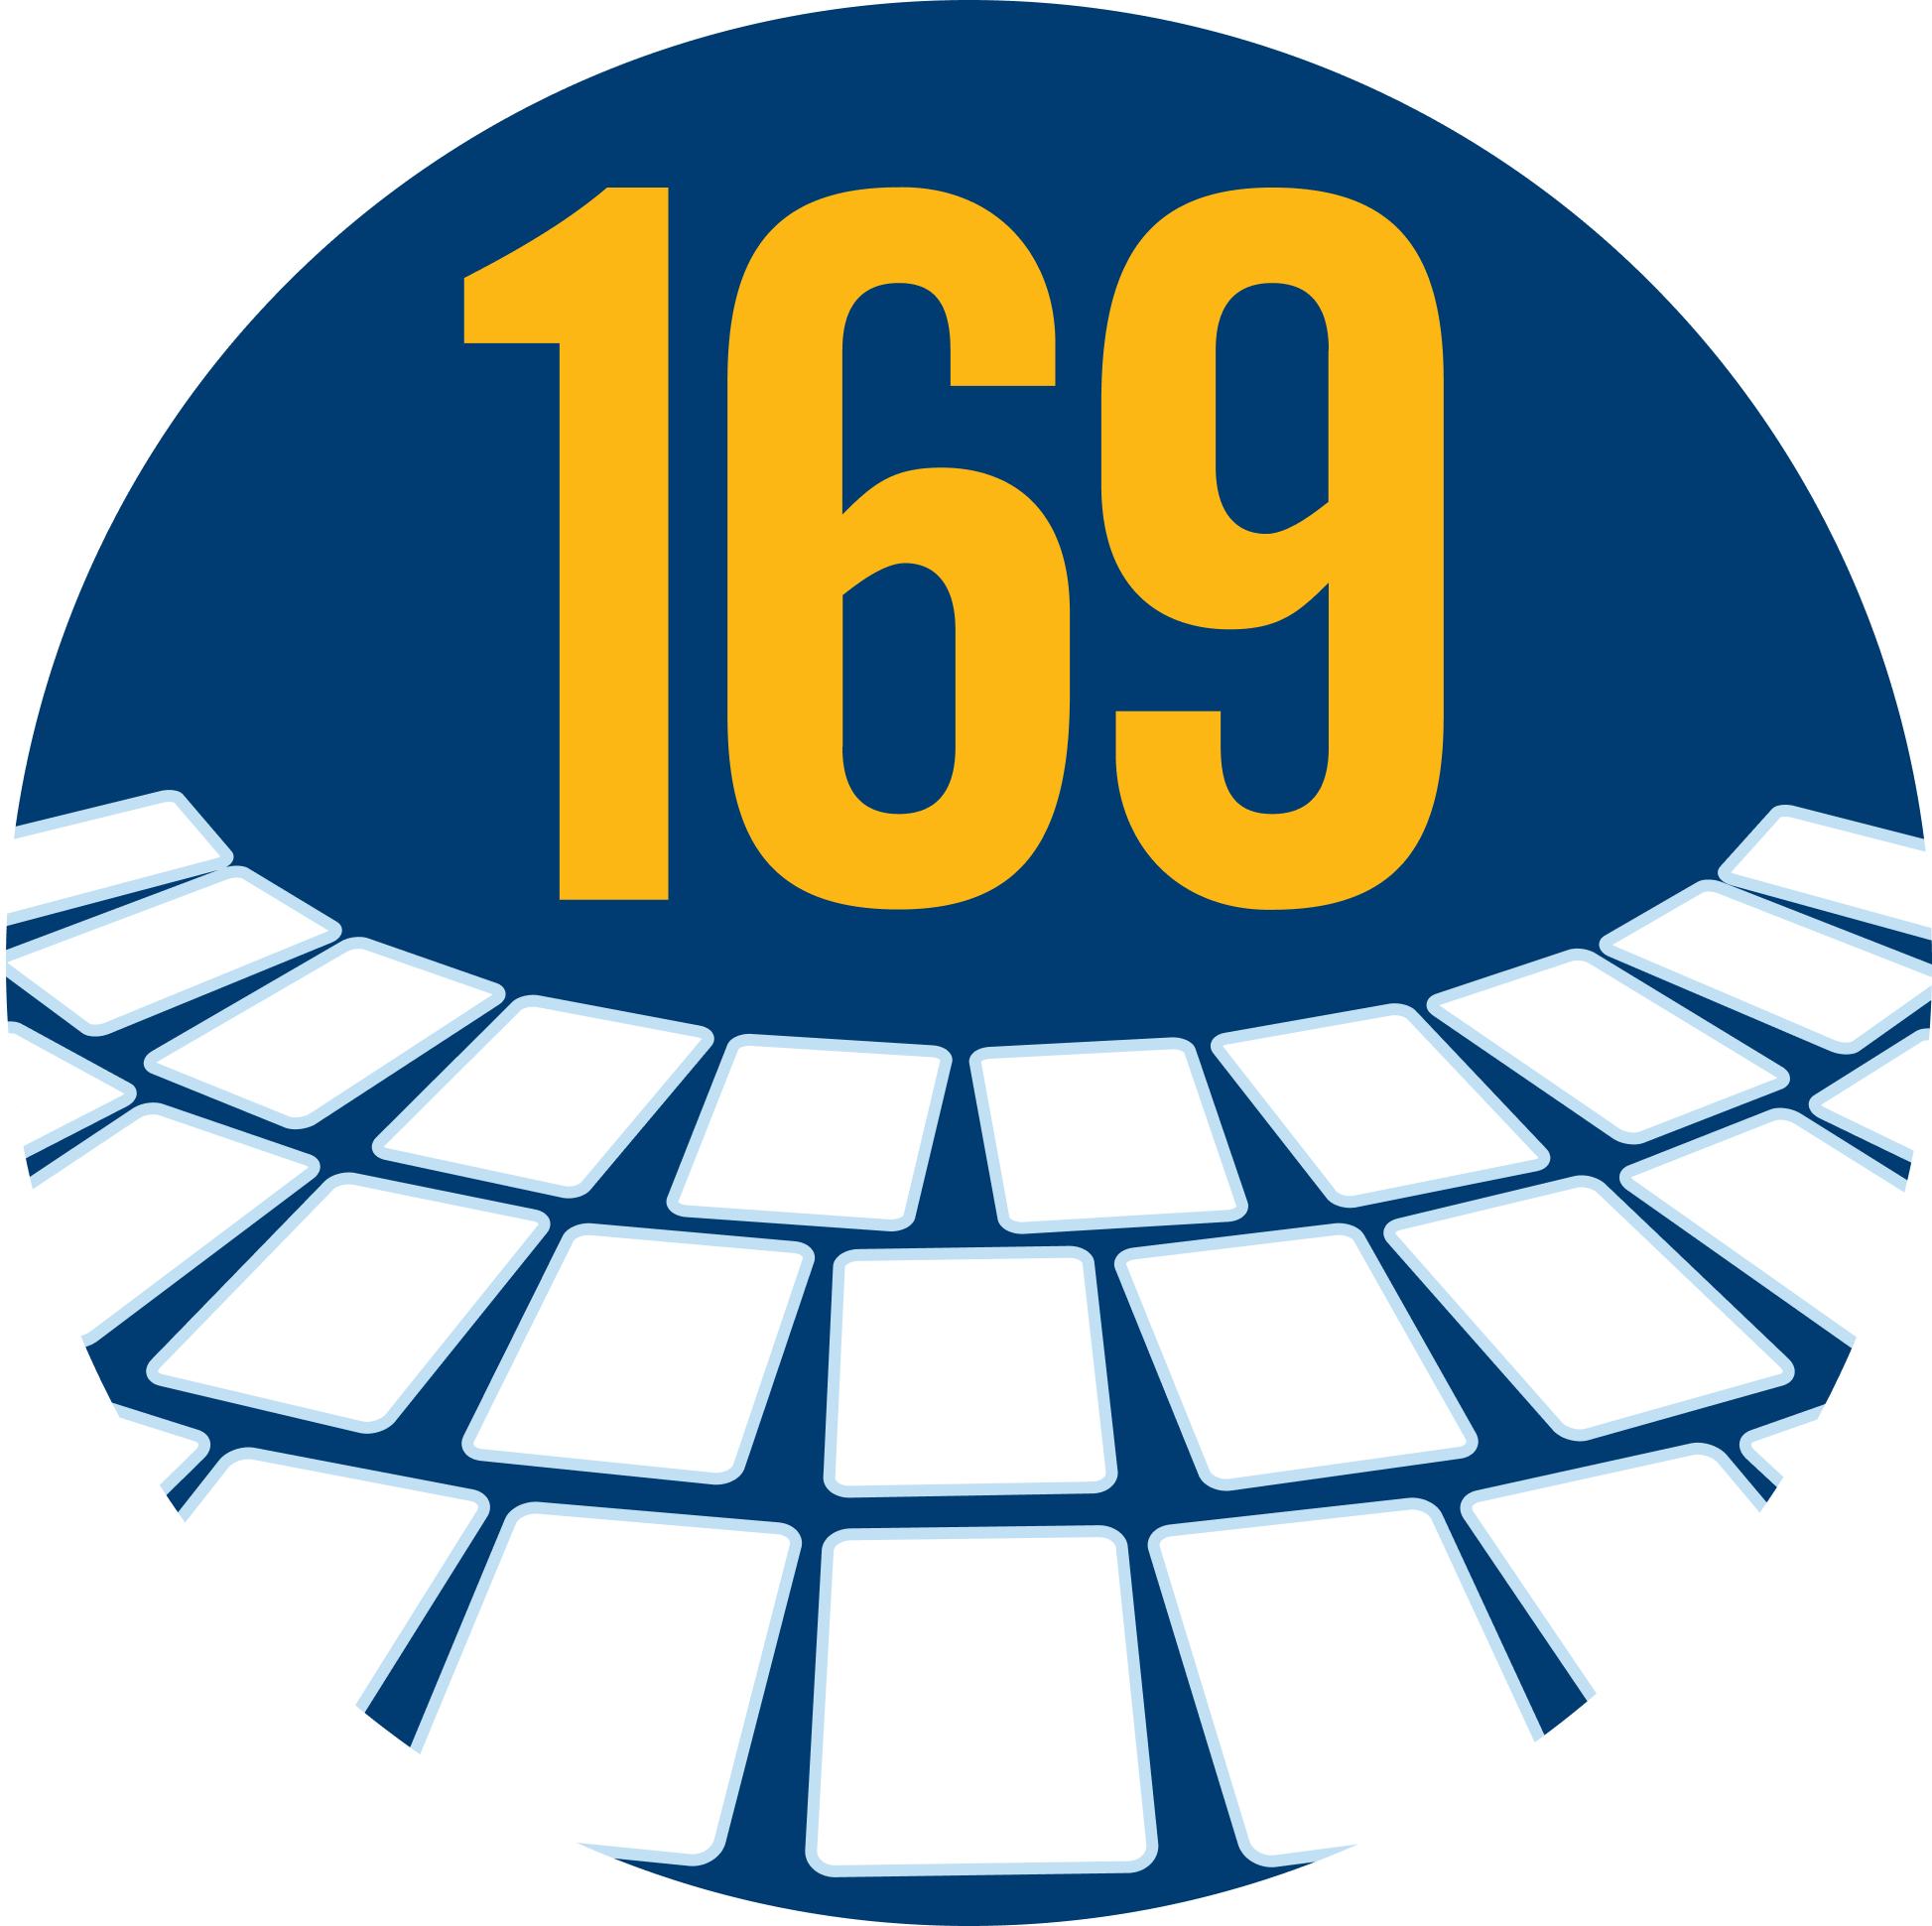 The number 169 with three rows of cards below it.